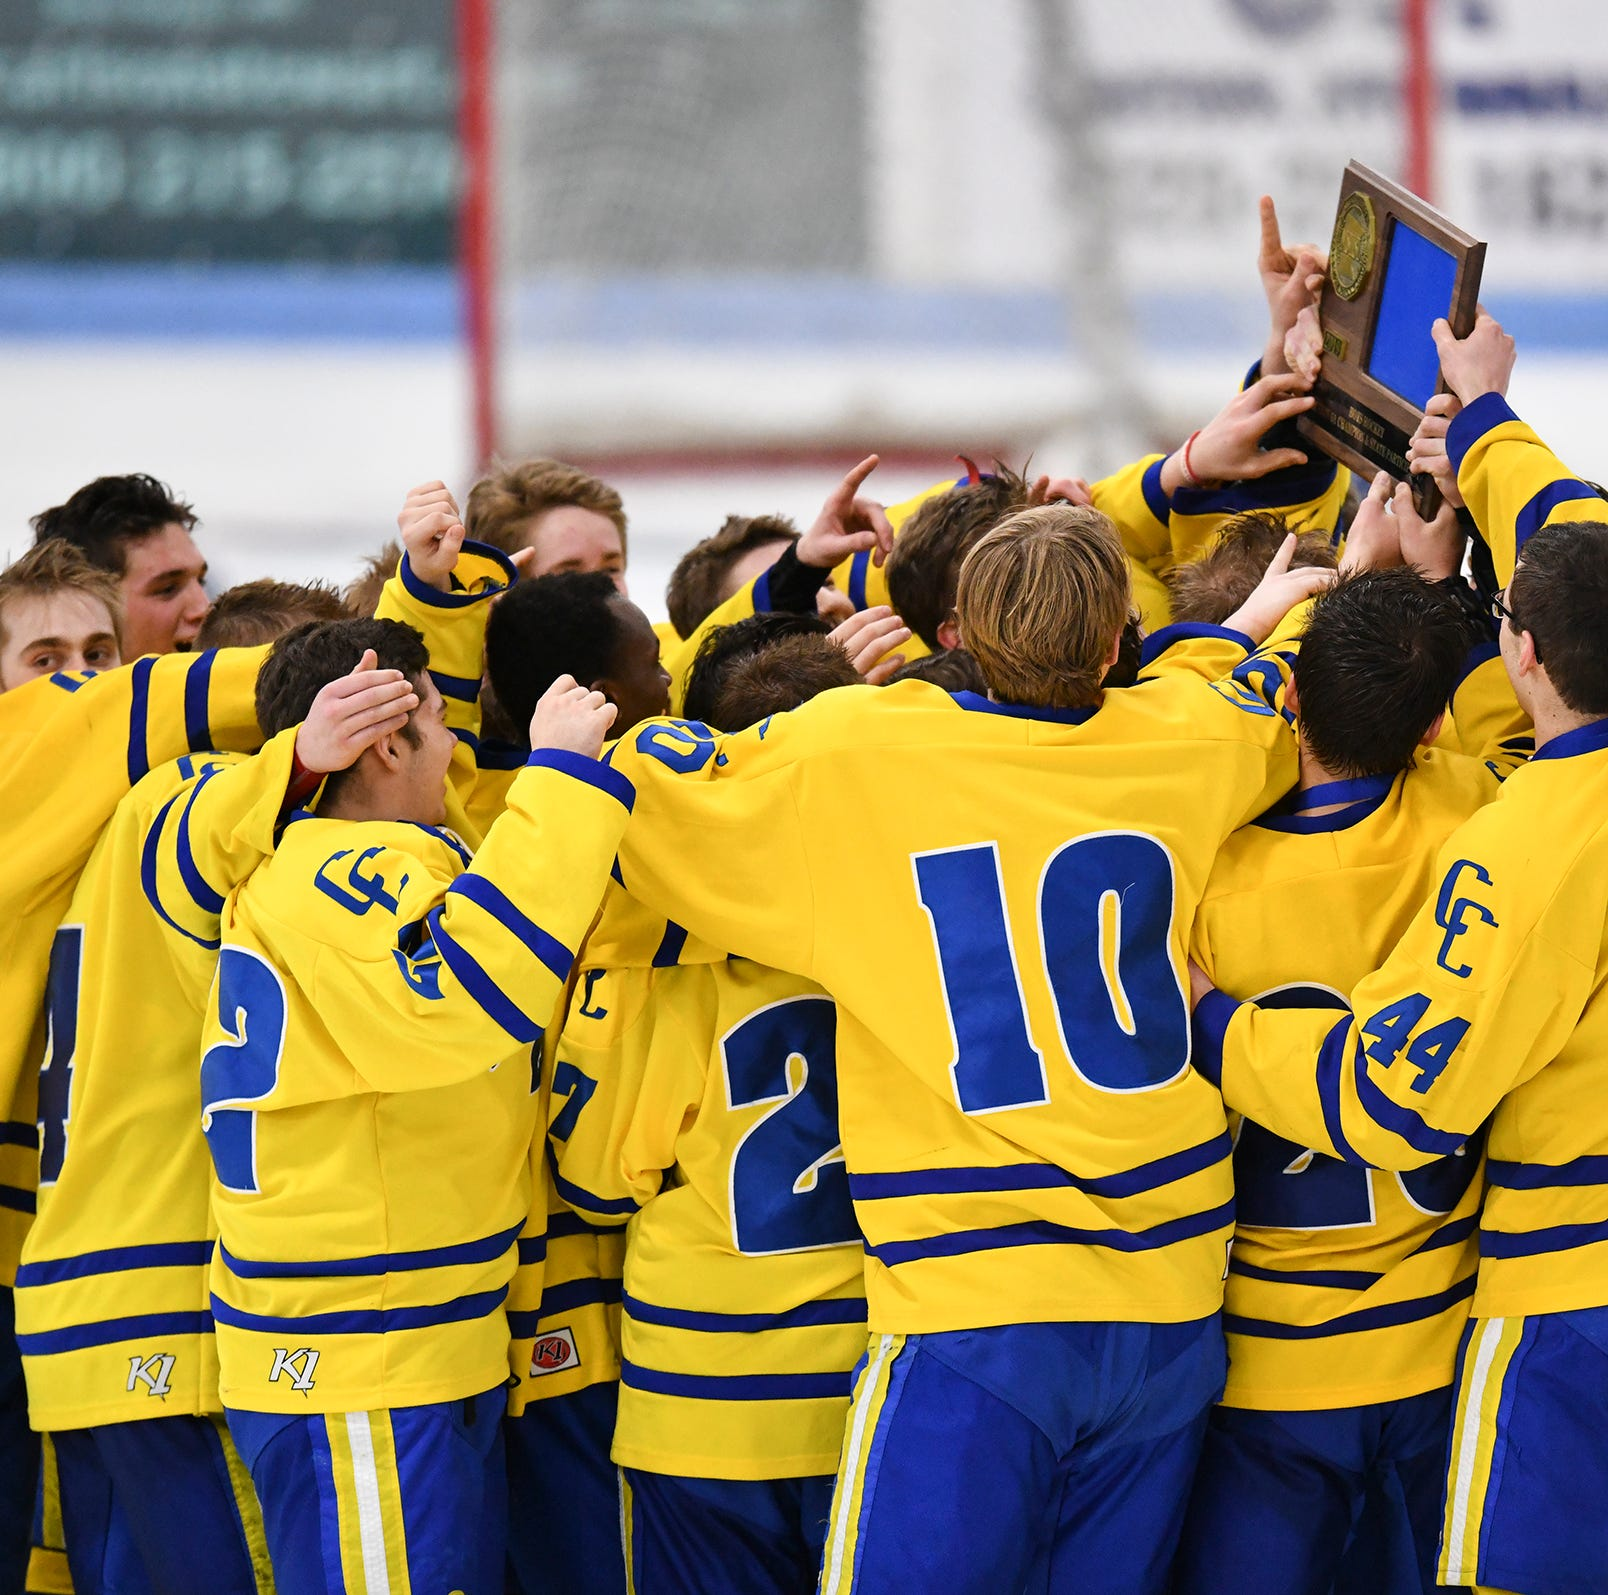 Hockey live updates: St. Cloud Cathedral vs. North Branch